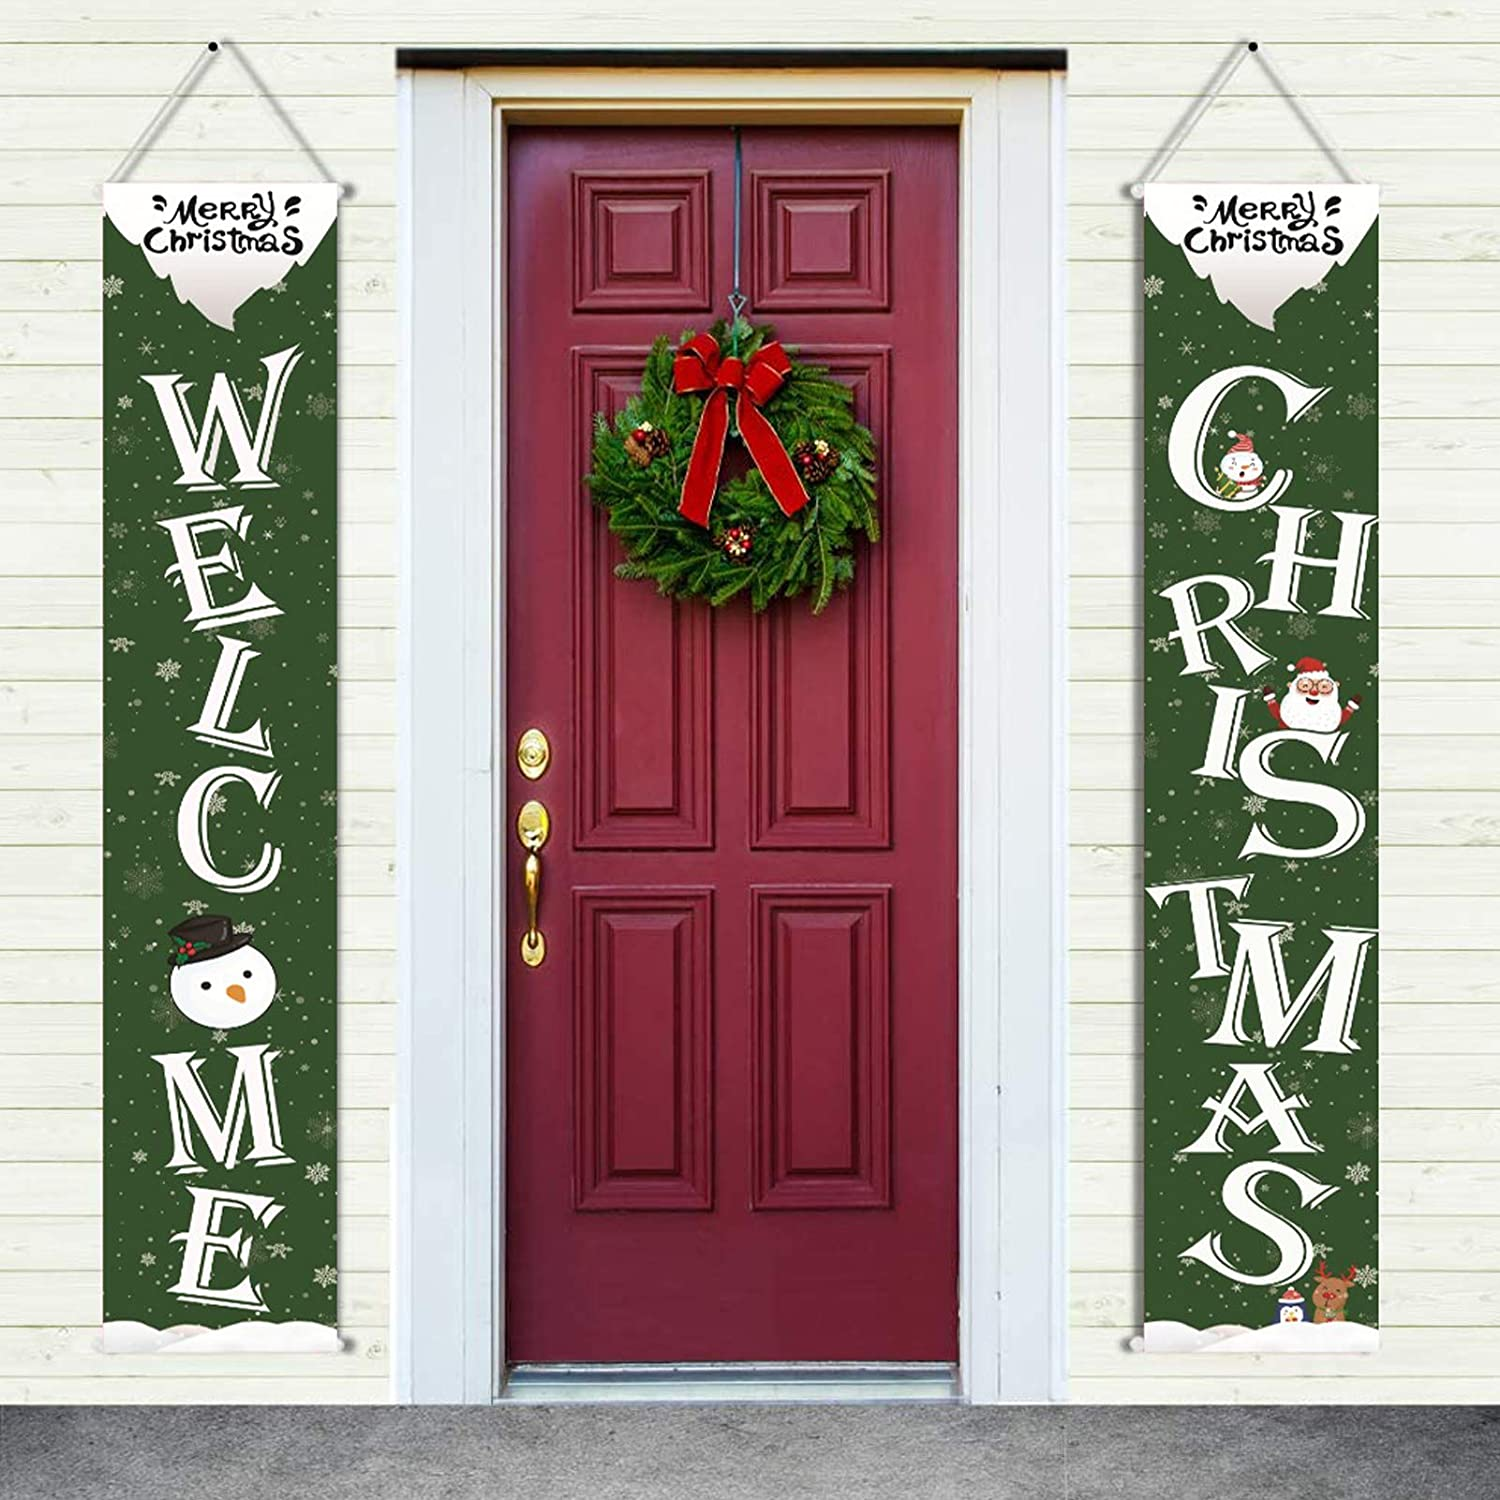 Amazon Com Christmas Nutcrackers Banners Front Porch Christmas Decorations Santa Clause Deer For Home Farmhouse Decor Indoor Outdoor Xmas New Year Porch Signs For Holiday Party Green White Health Personal Care